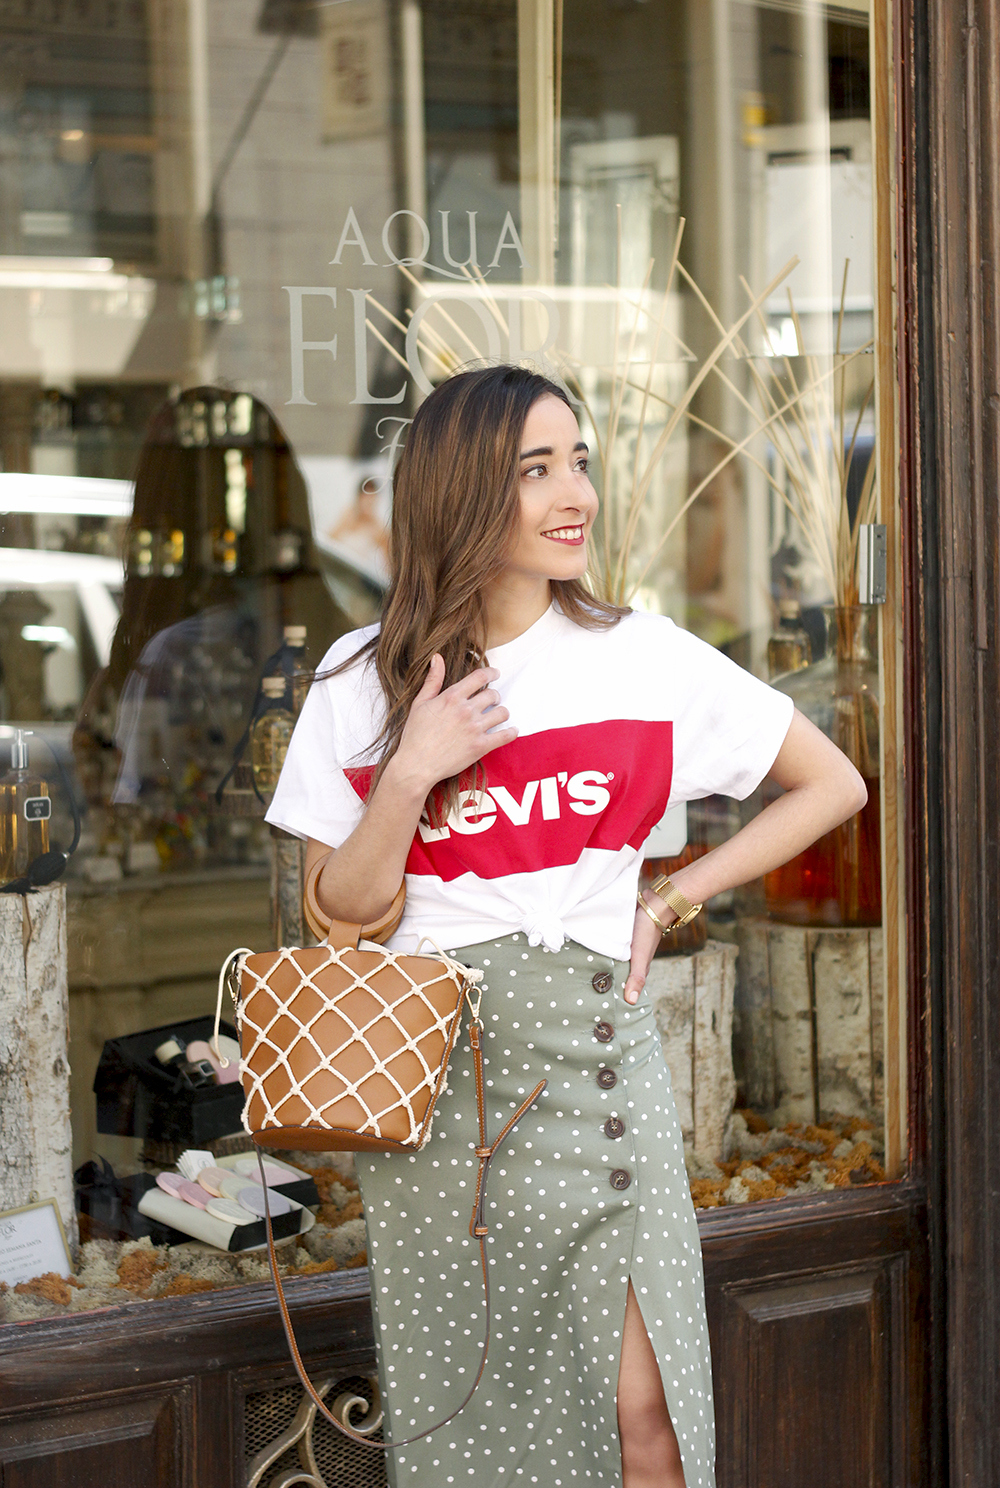 midi polka dots skirt denim jacket levis tshirt superga sneakers street style casual outfit spring 20192